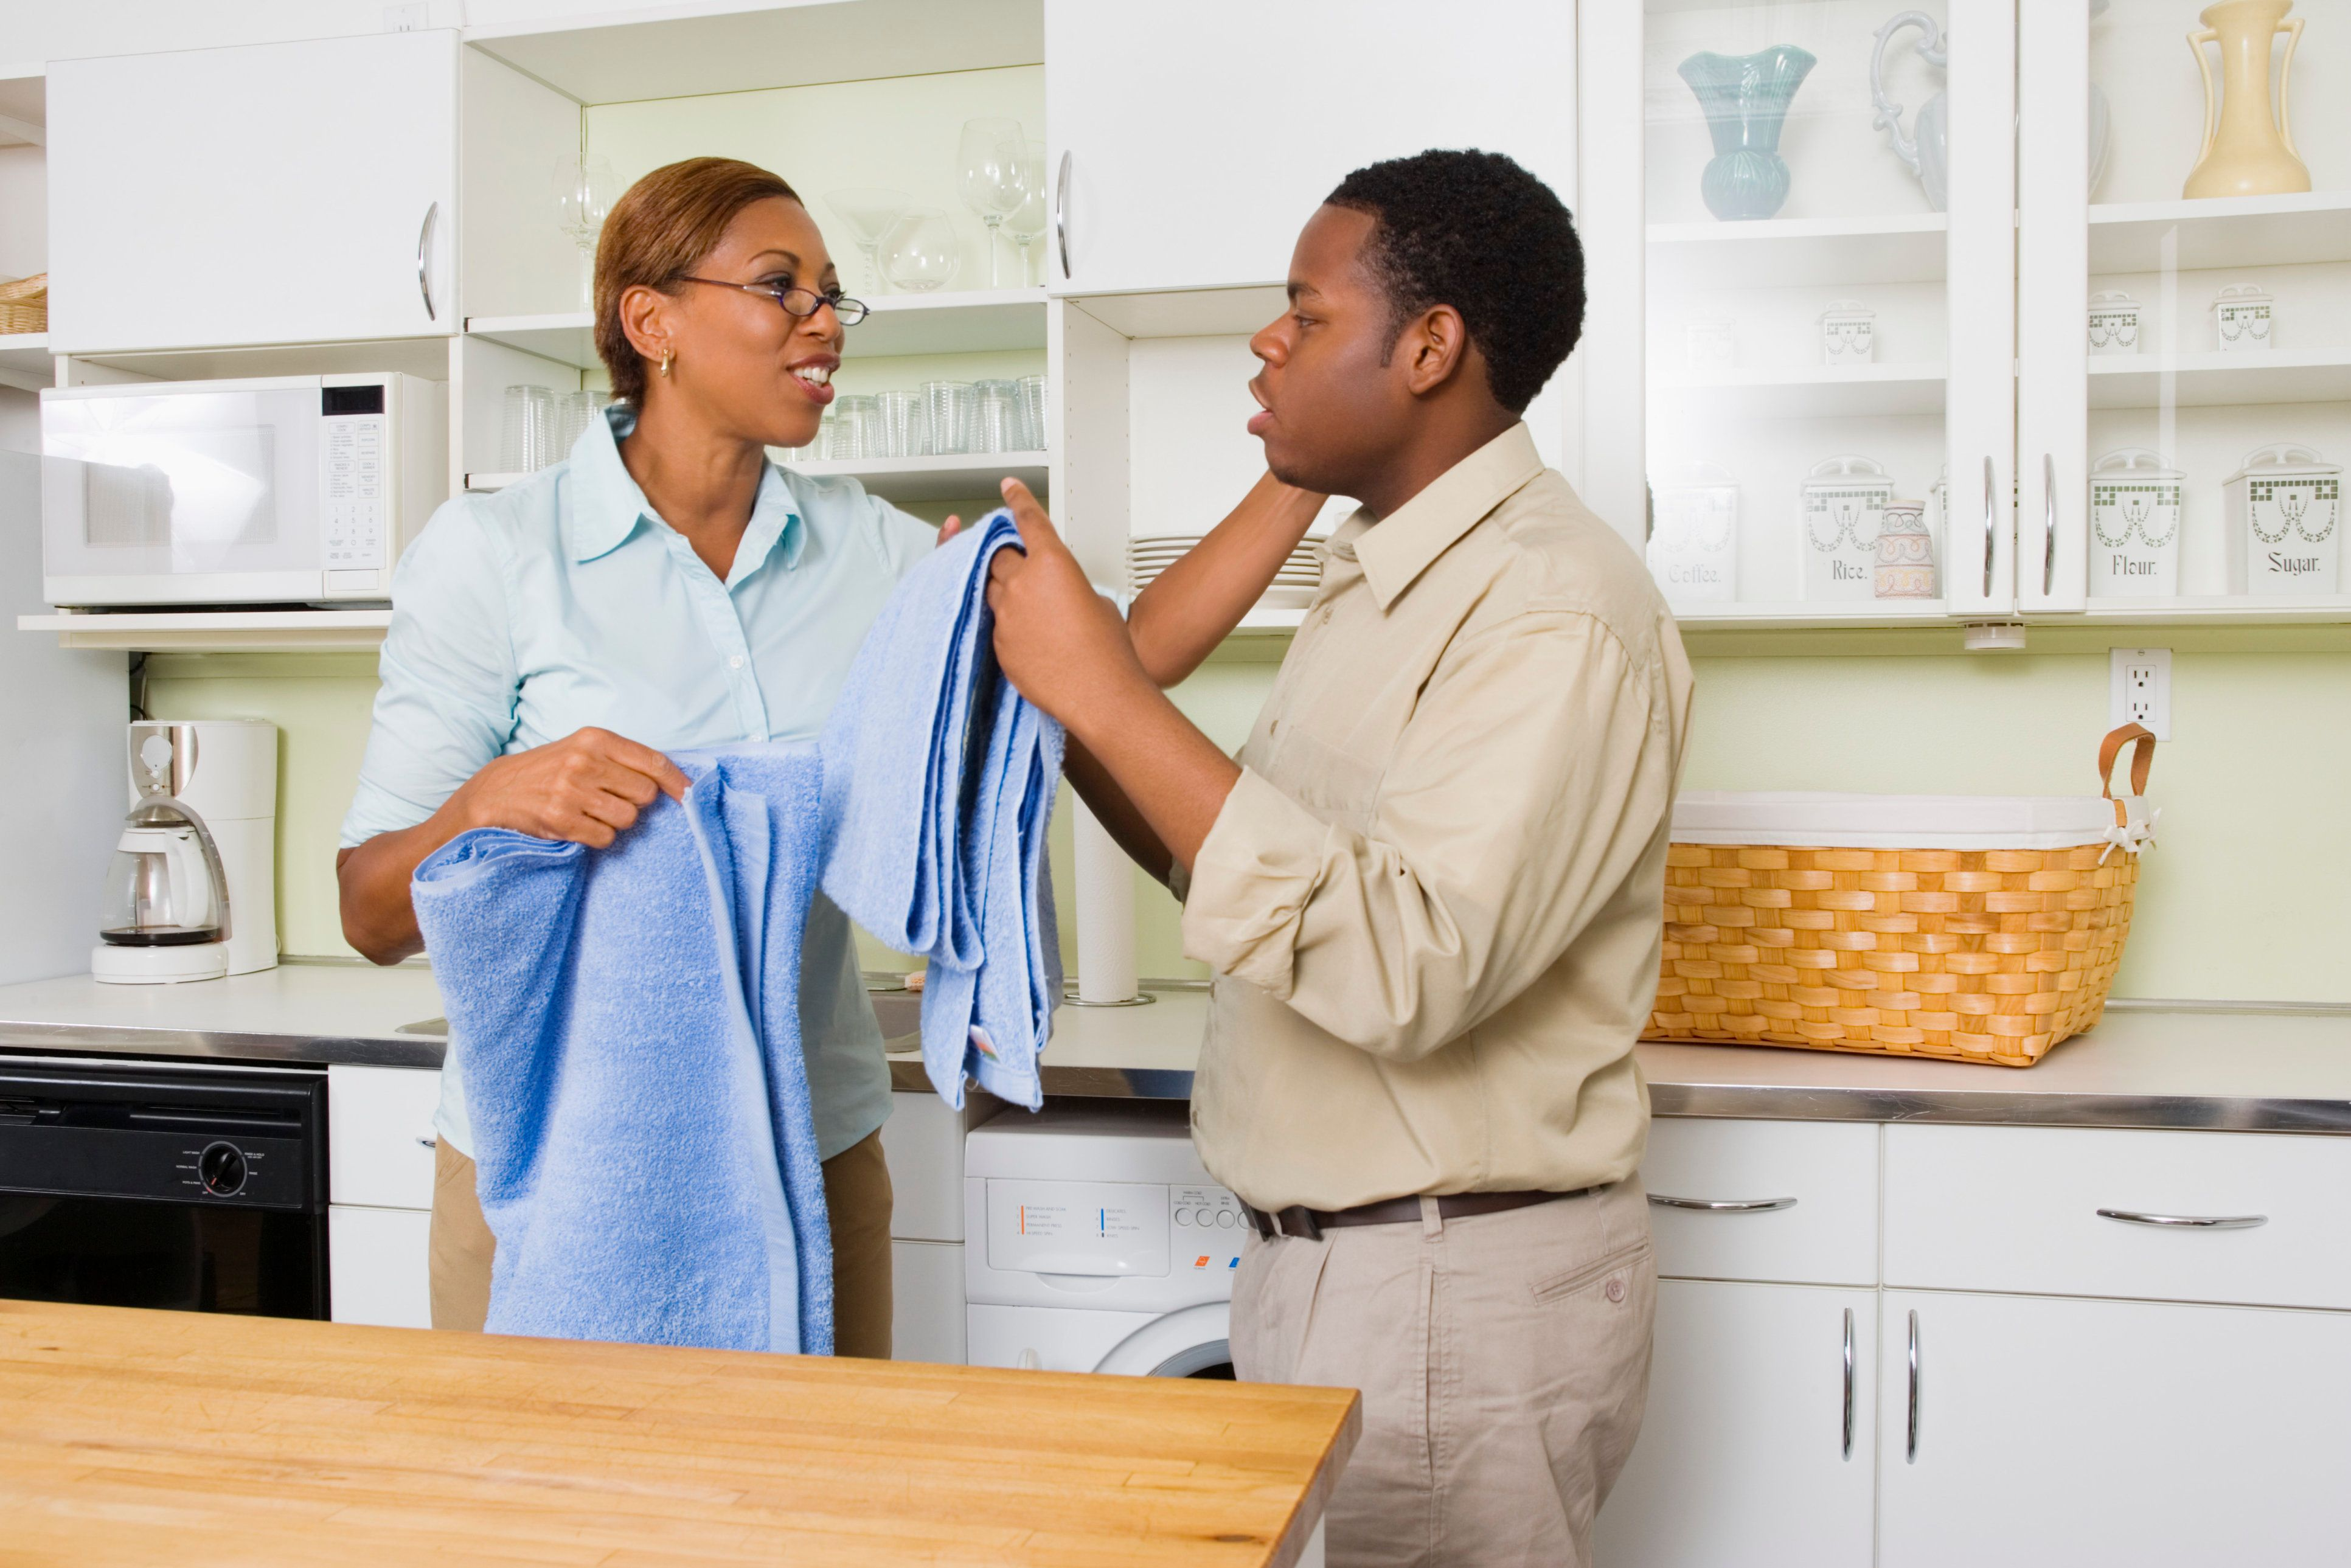 Mother and son folding towels in kitchen